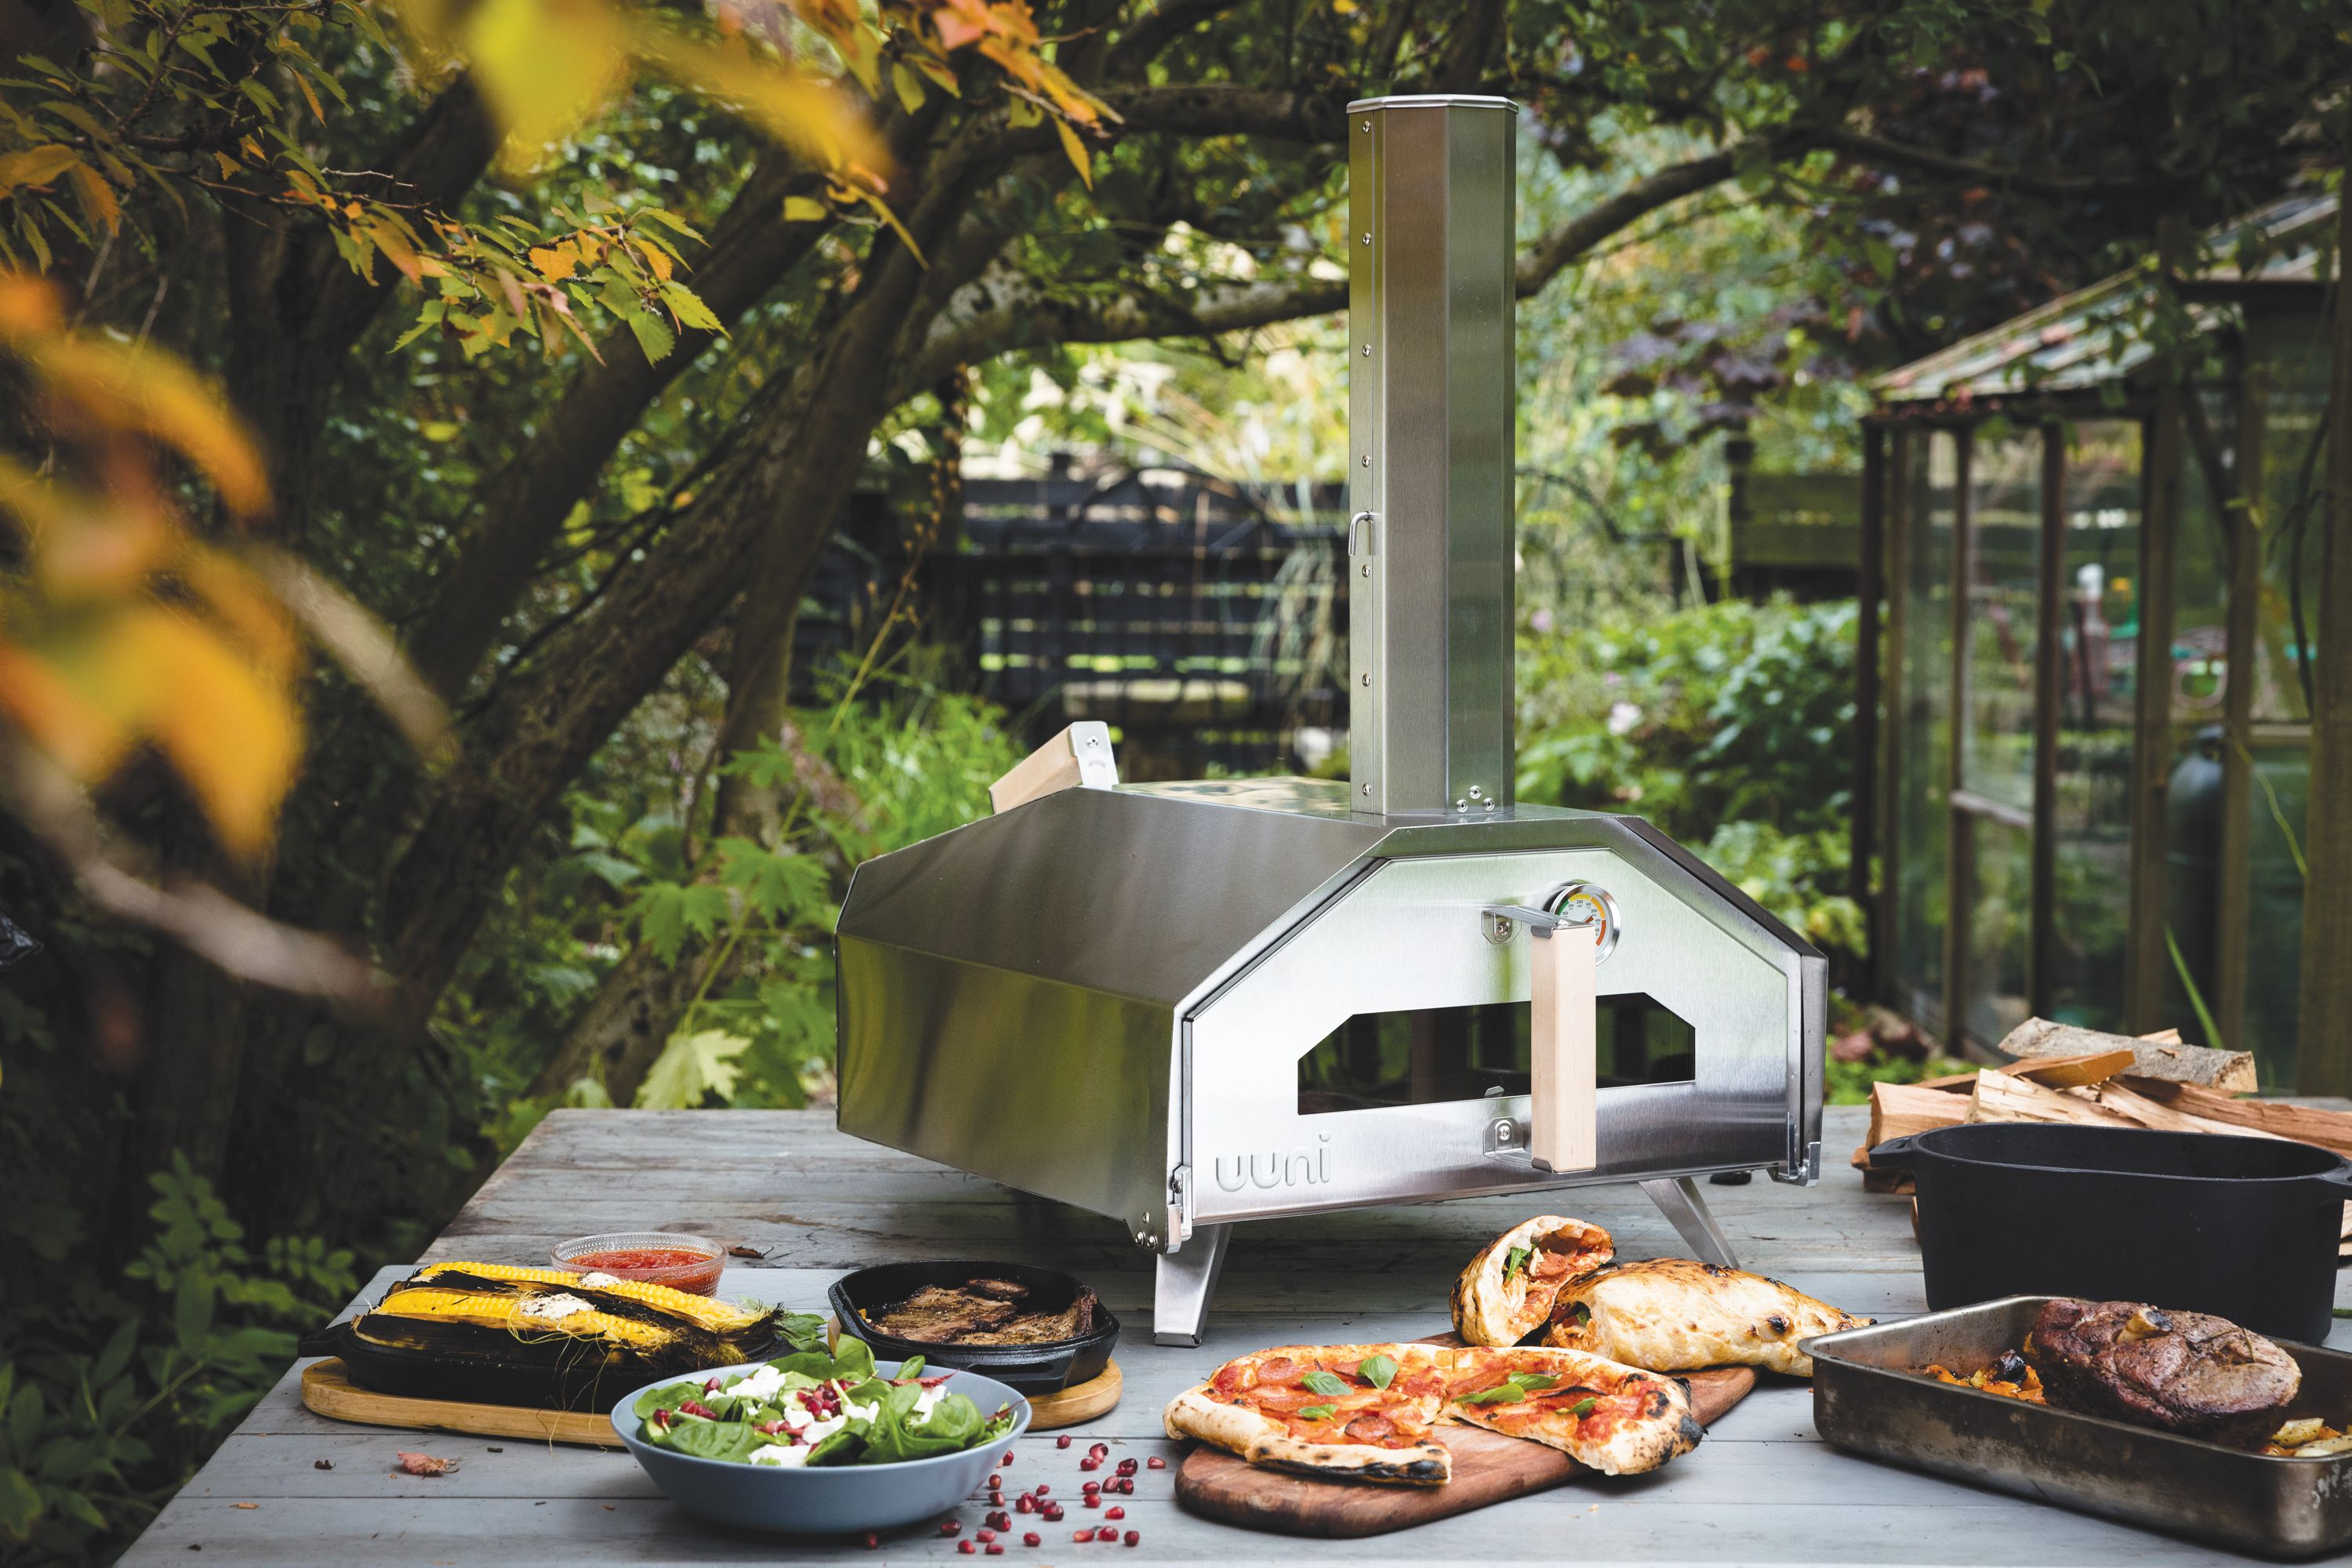 3d183b93c514057fabf88baefeed0635 - Better Homes And Gardens Pizza Oven Video